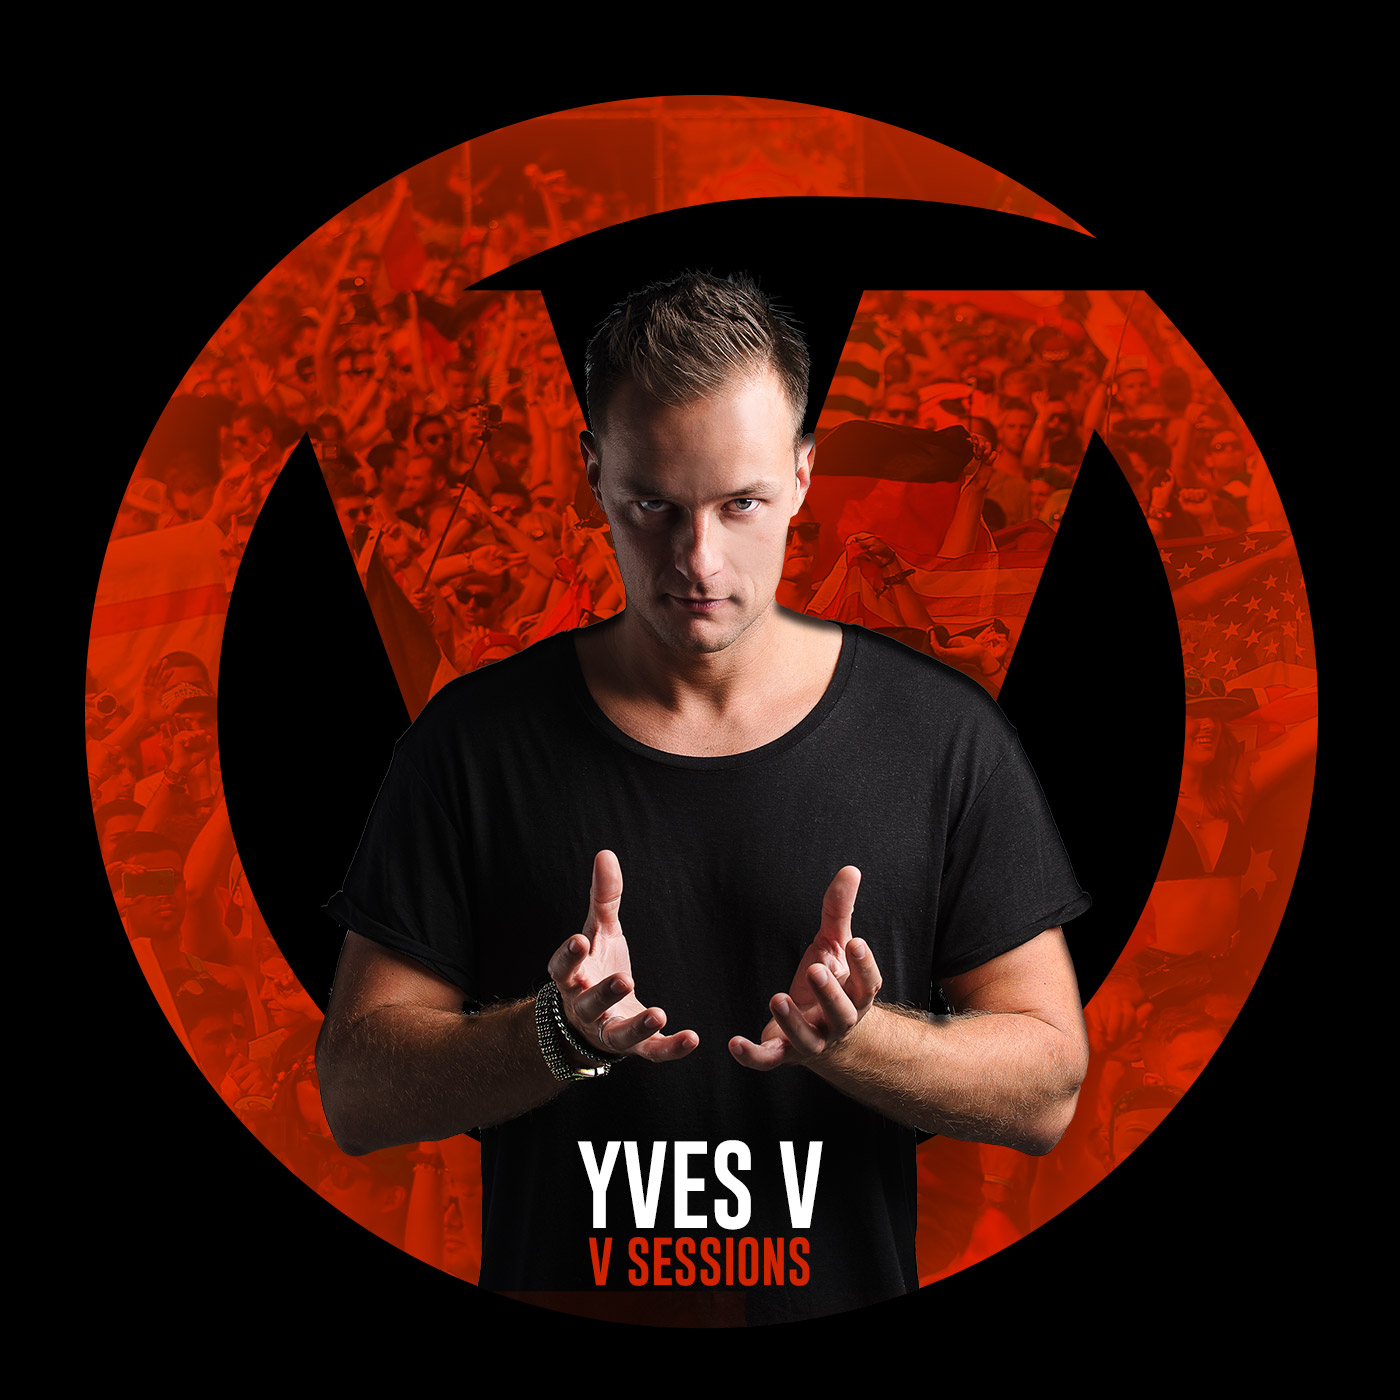 V Sessions with Yves V